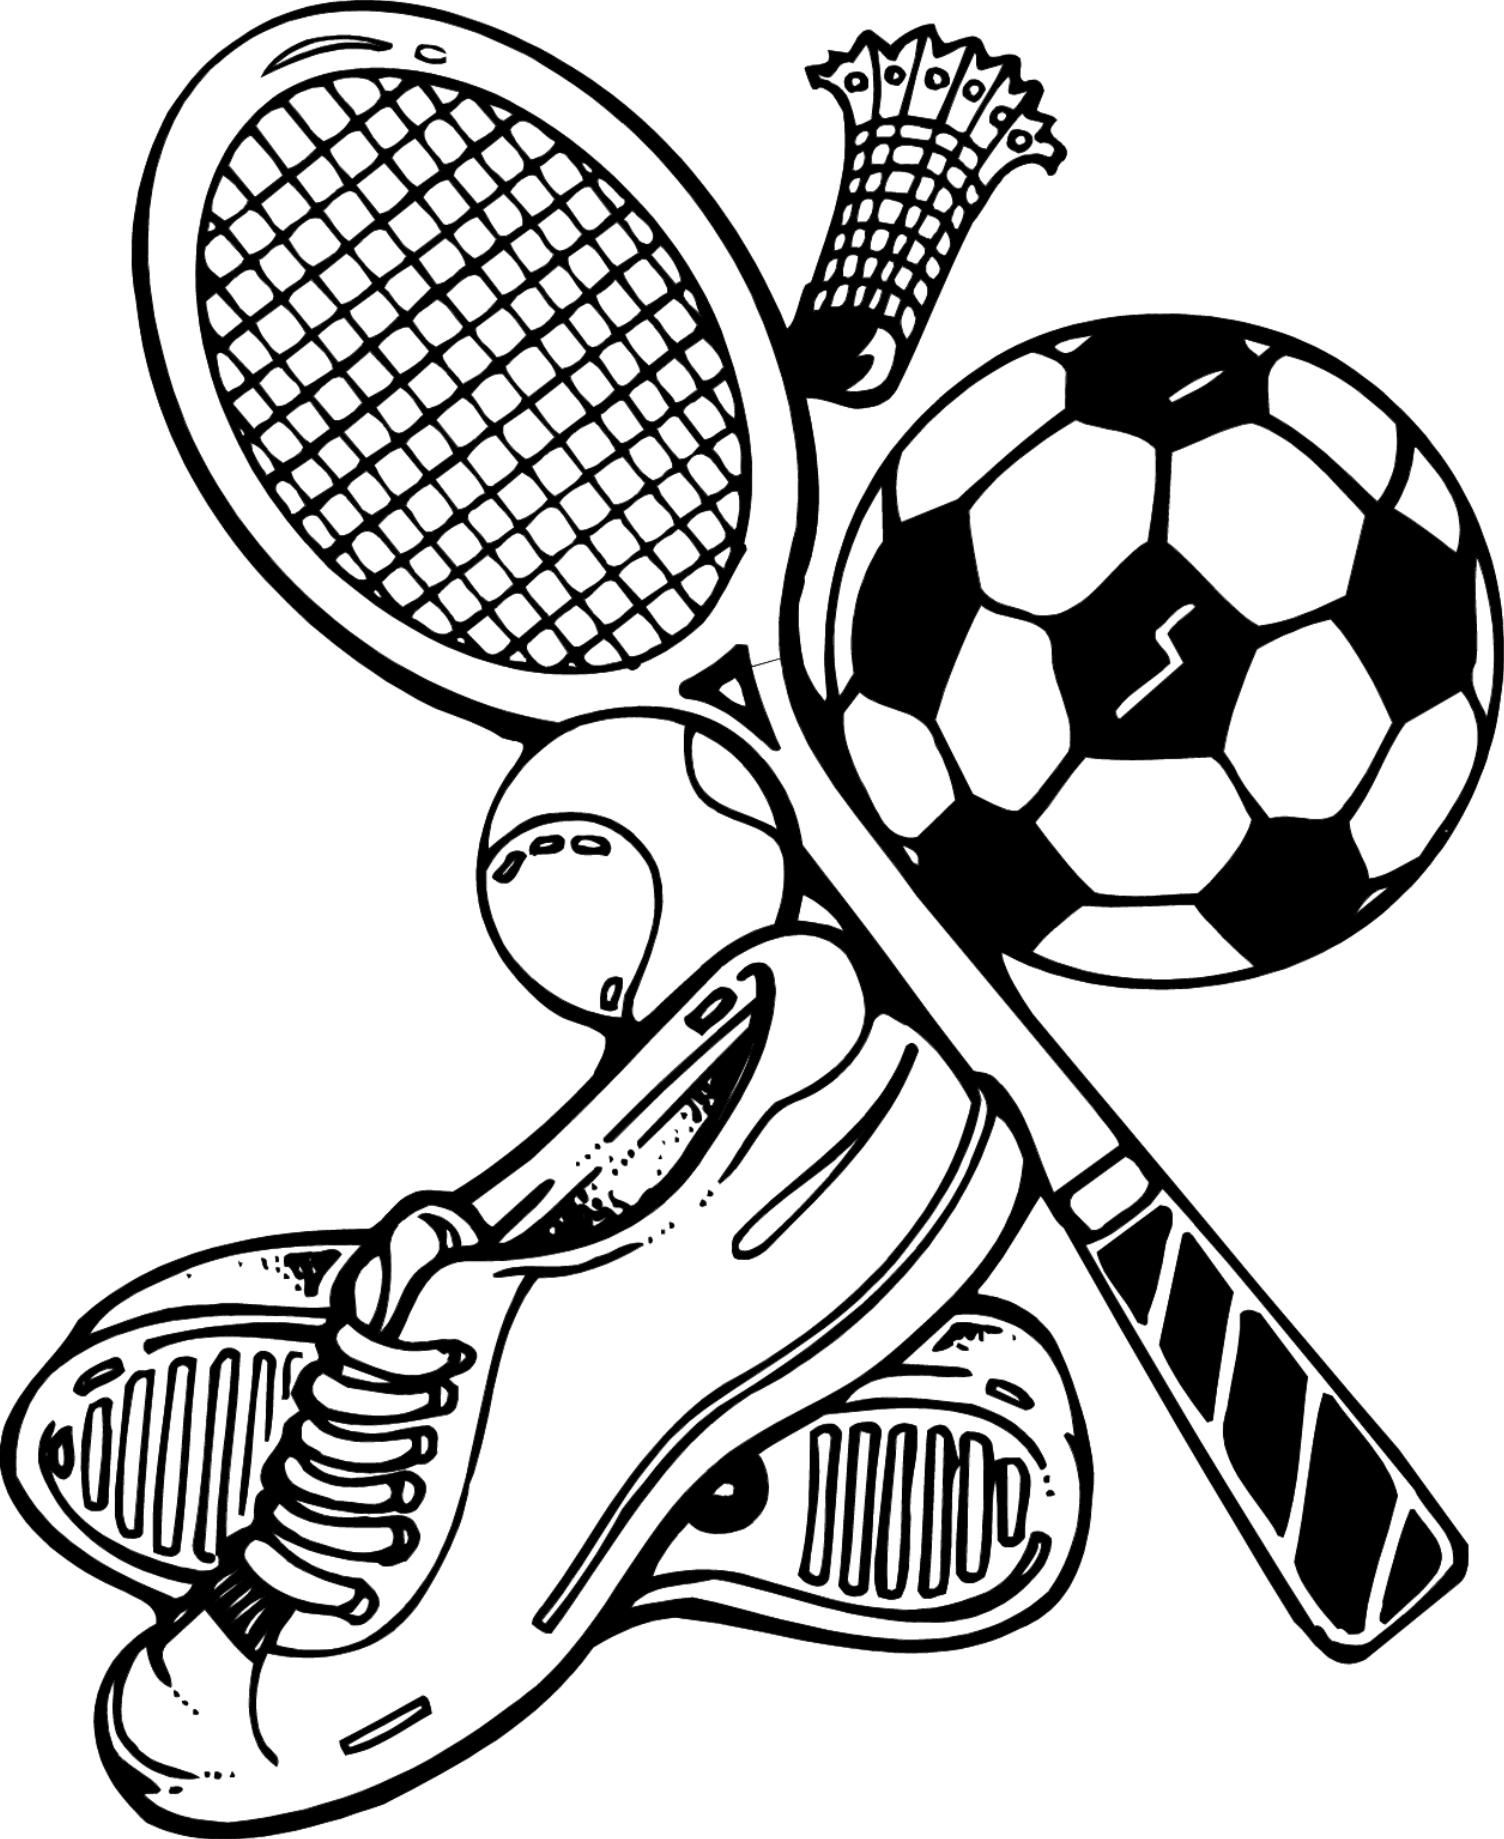 P e coloring pages - Free Sports Equipment Coloring Pages To Print Gianfreda Net